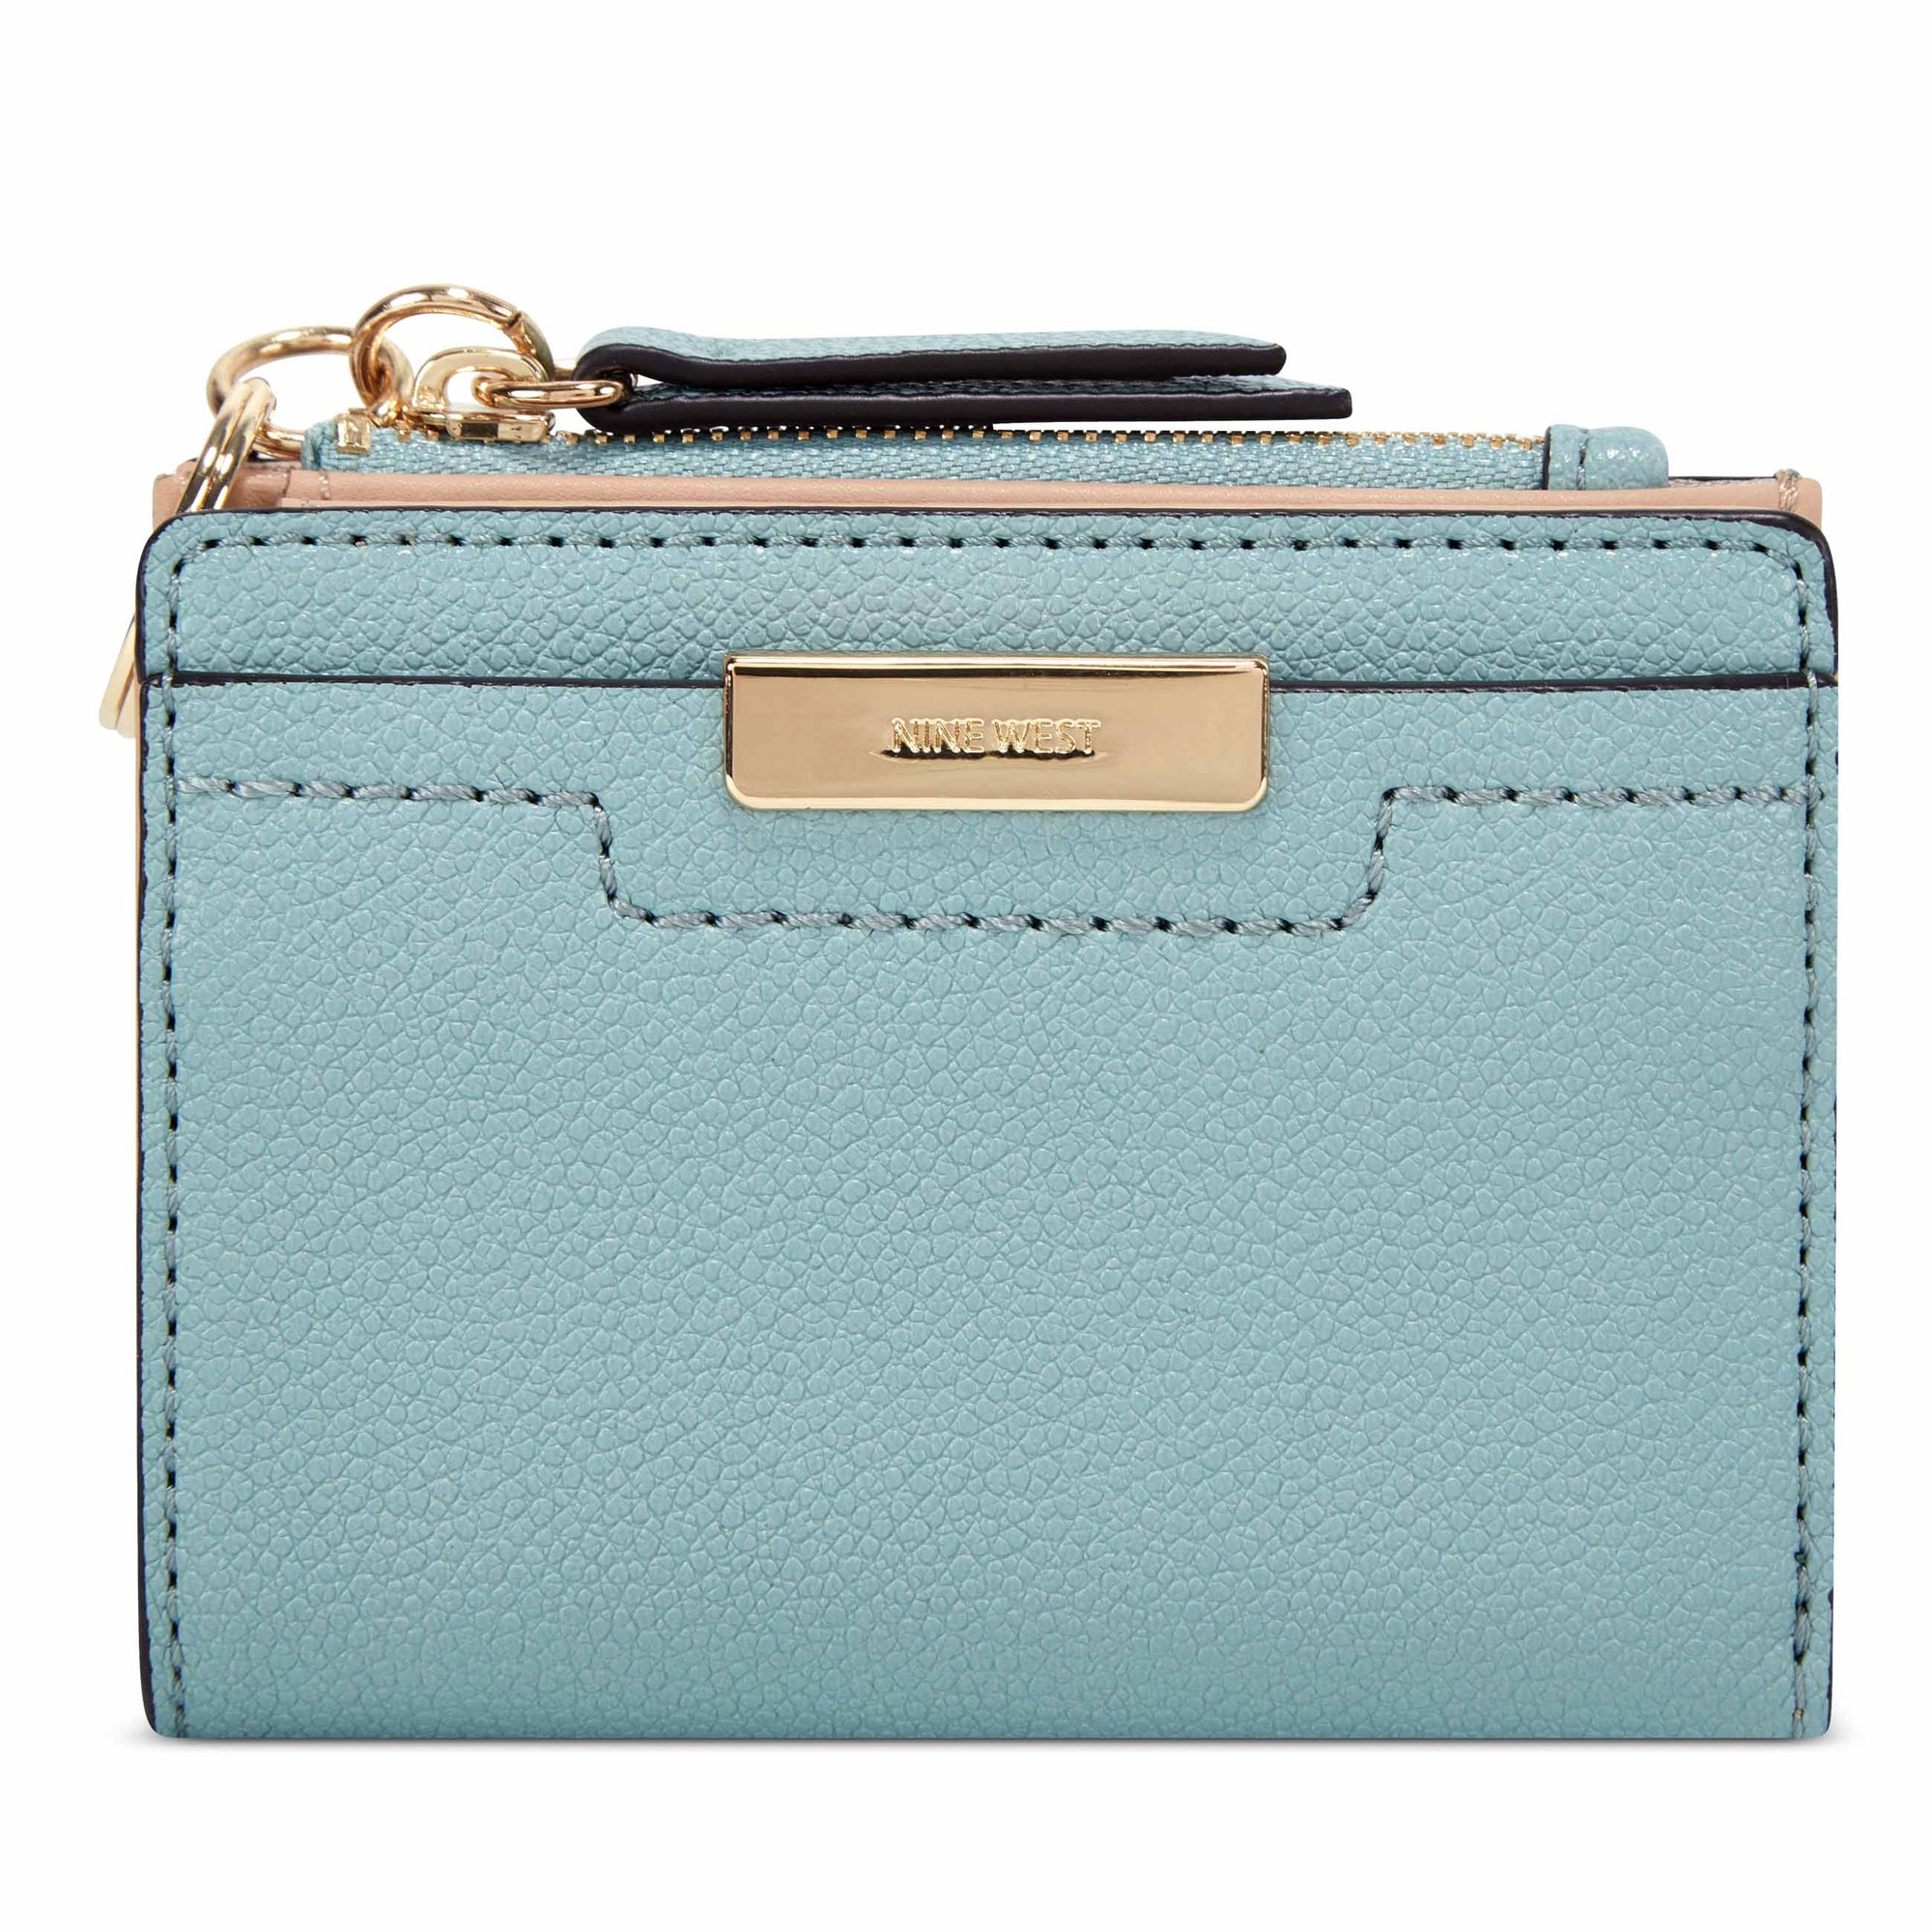 Kennedy Small Zip Wallet